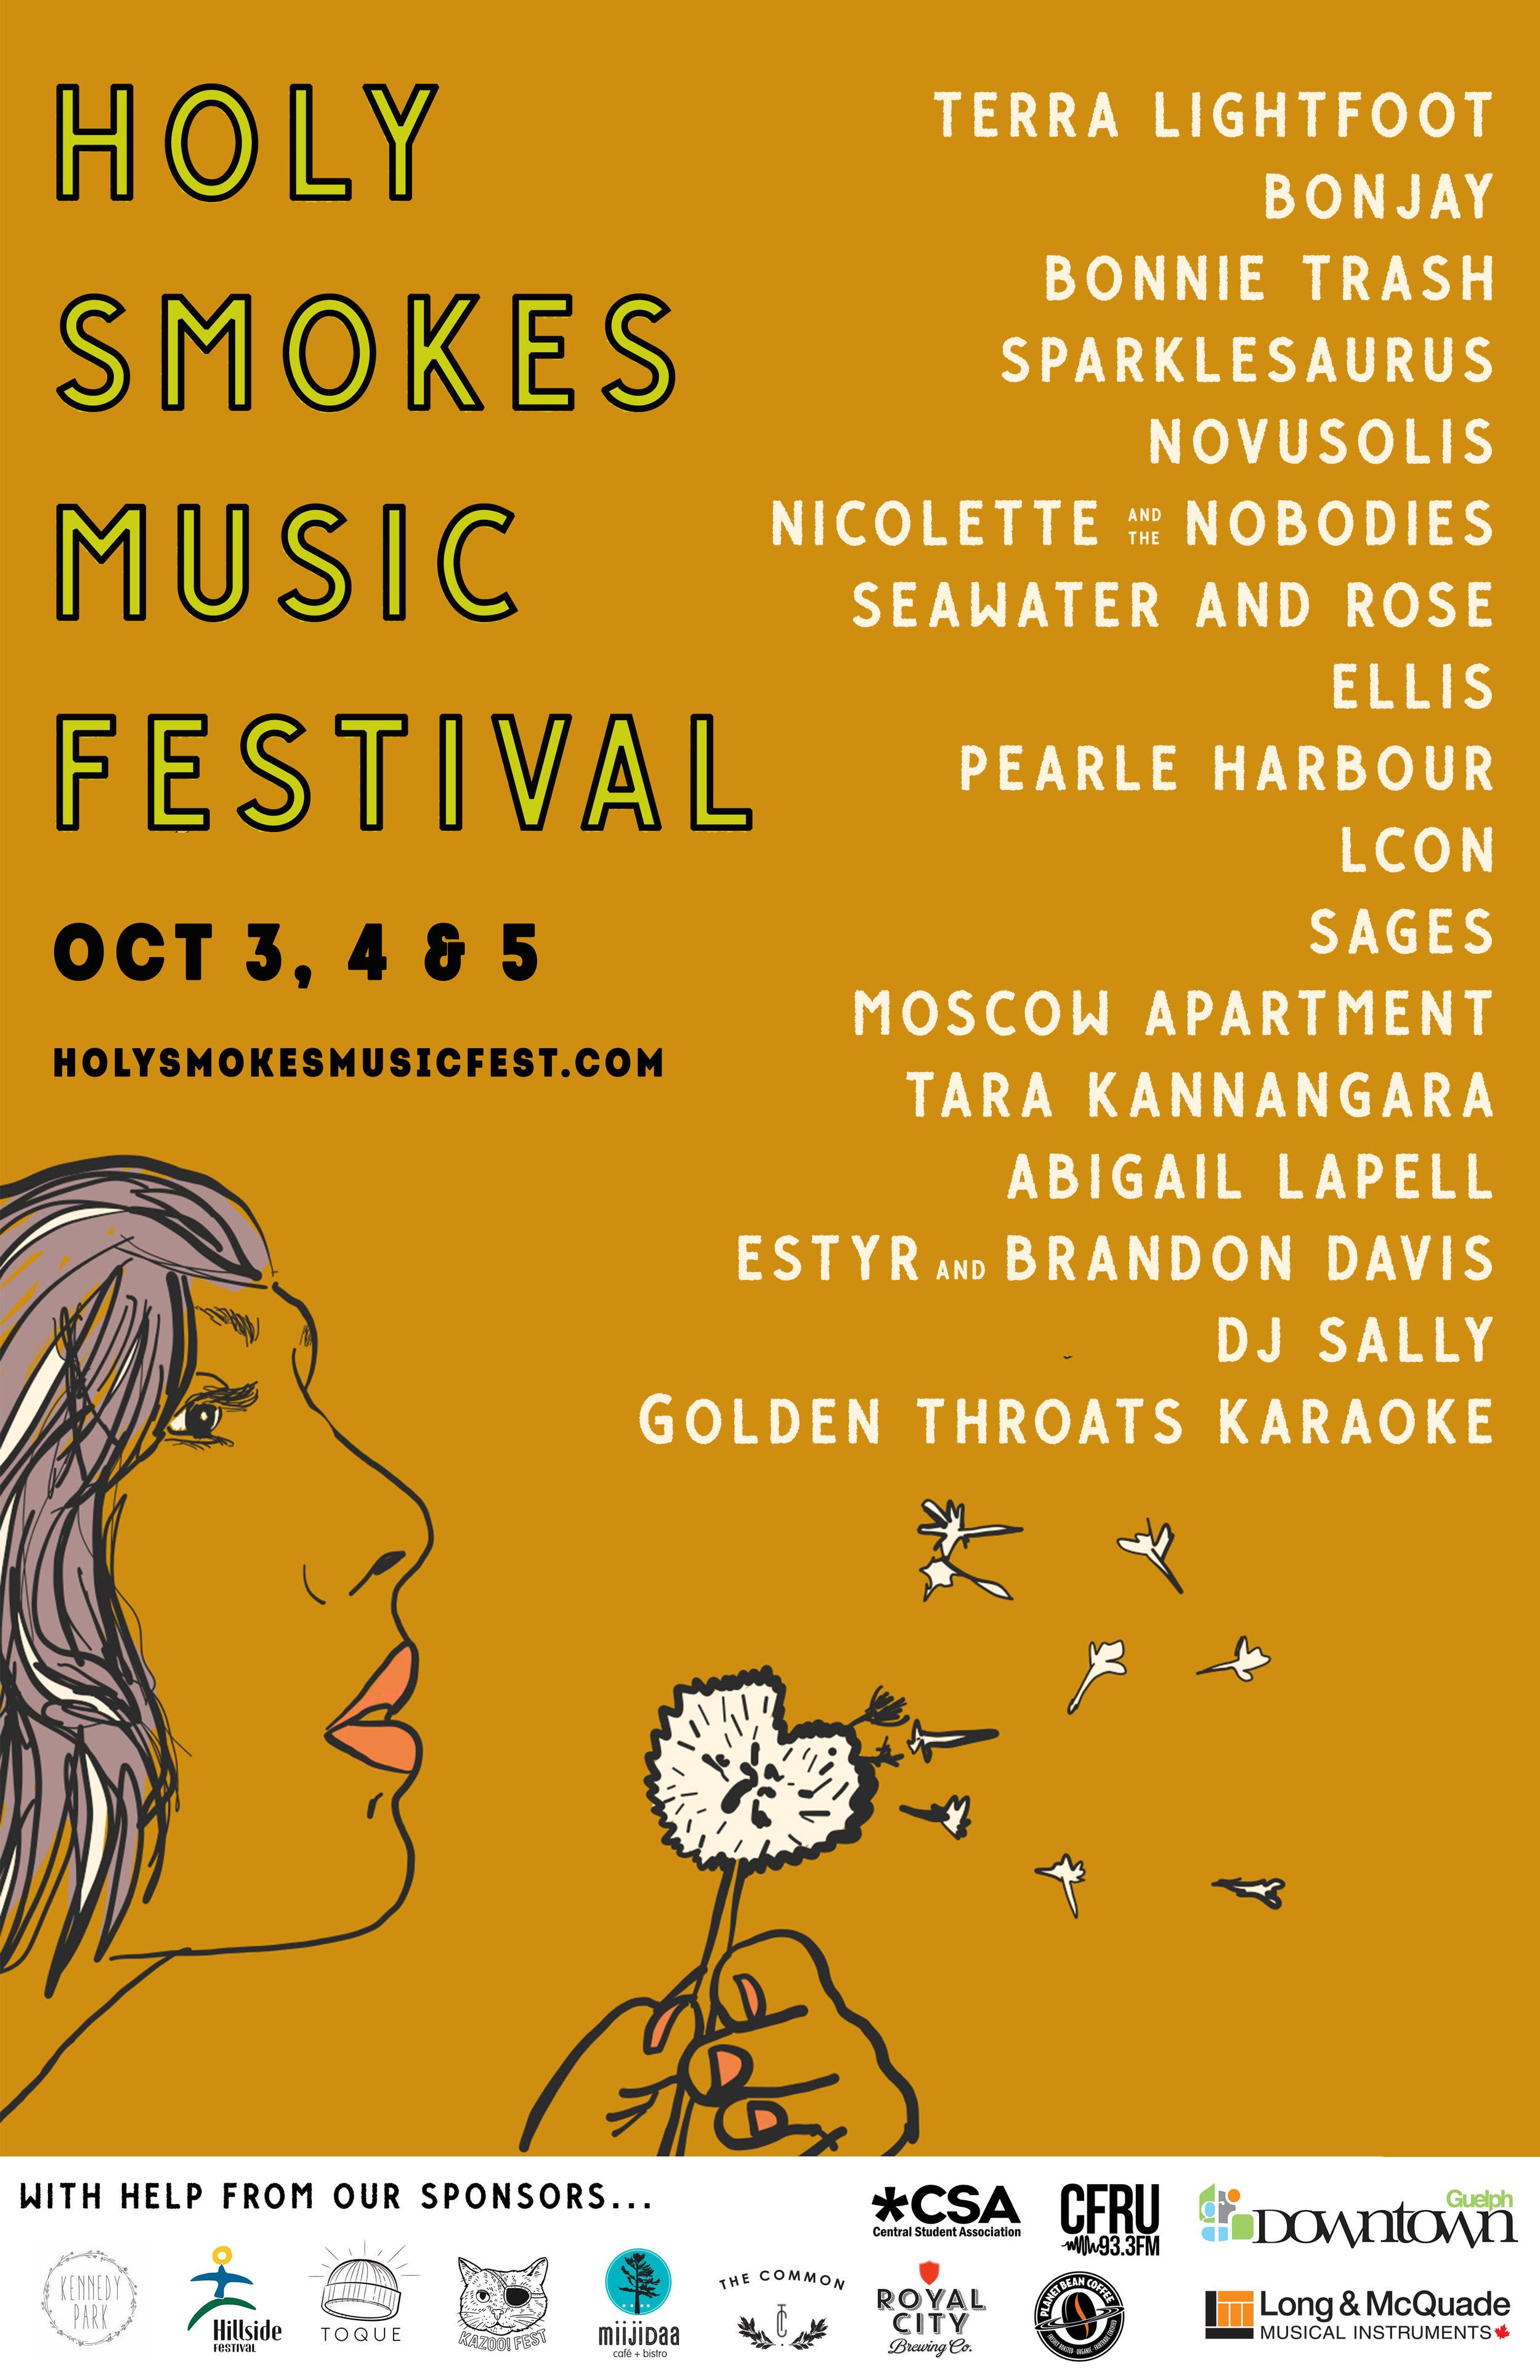 2019 line-up is here!! - Visit our schedule page for more details and links to buy tickets or a weekend pass.After an immensely successful first year, Holy Smokes is in it's second year and will be happening this October 3, 4 & 5 in Downtown Guelph. Holy Smokes has a mandate to create greater equality in the music industry by creating space for women and non-binary identifying musicians and tech people. They play the shows, they do sound, tech, book and run the venues.